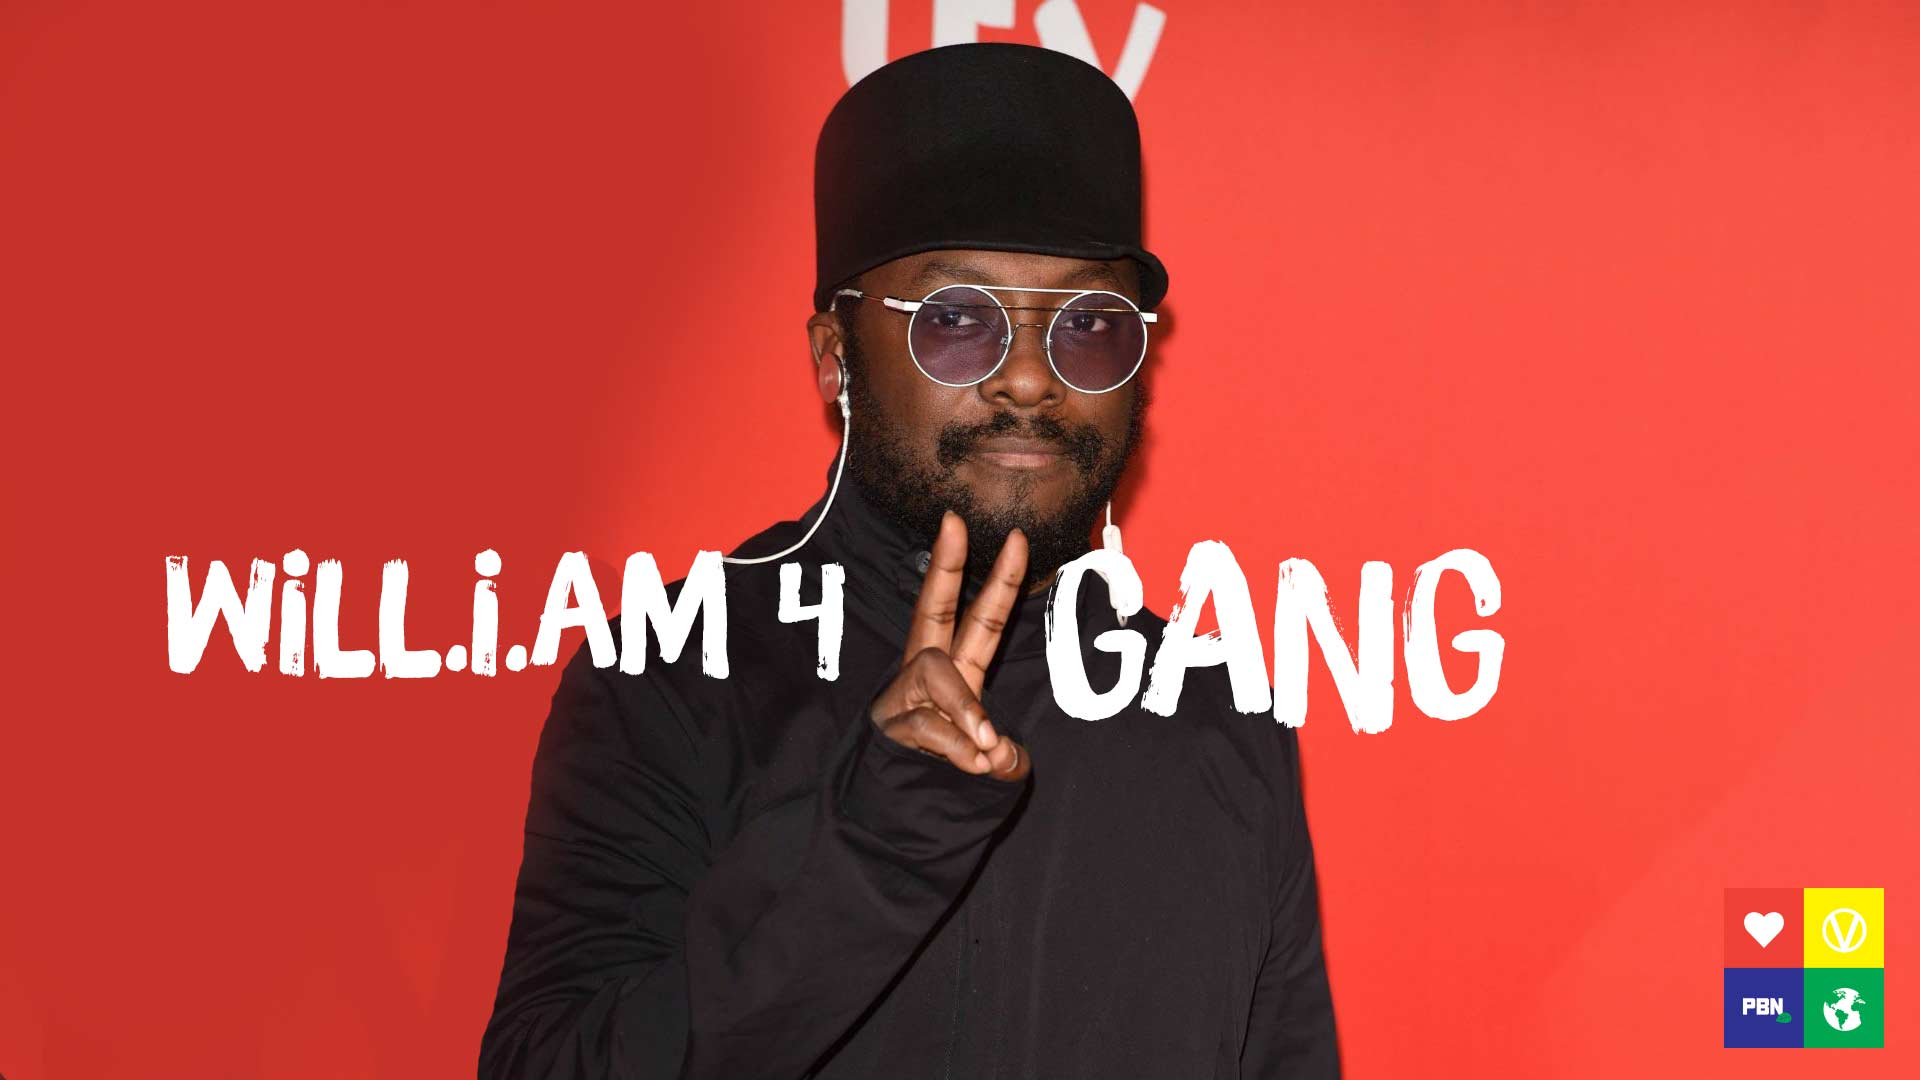 Black Eyed Peas musician will.i.am